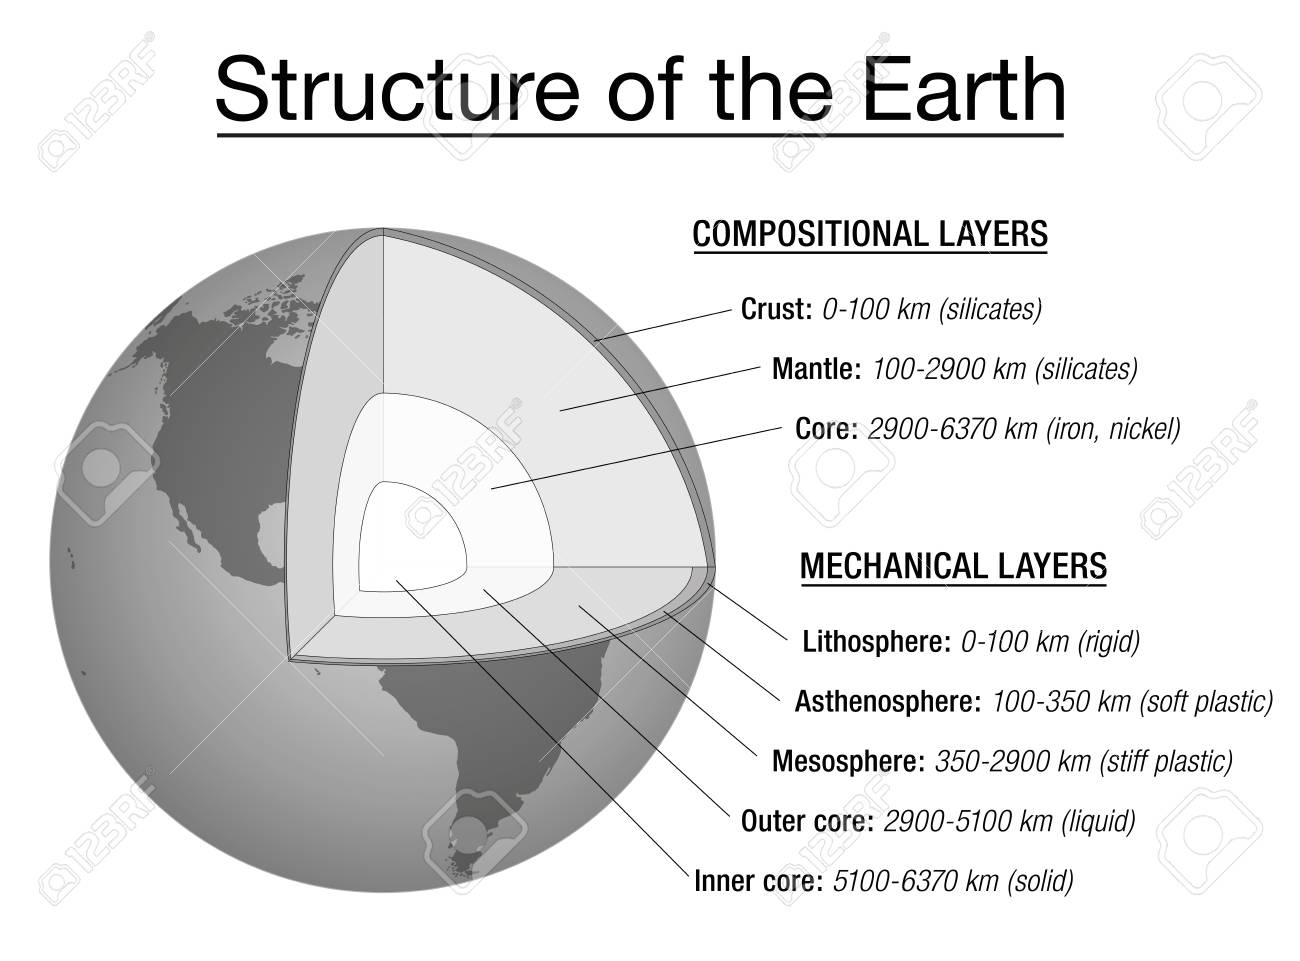 structure of the earth explanation chart - cross section and layers of the  earths interior,